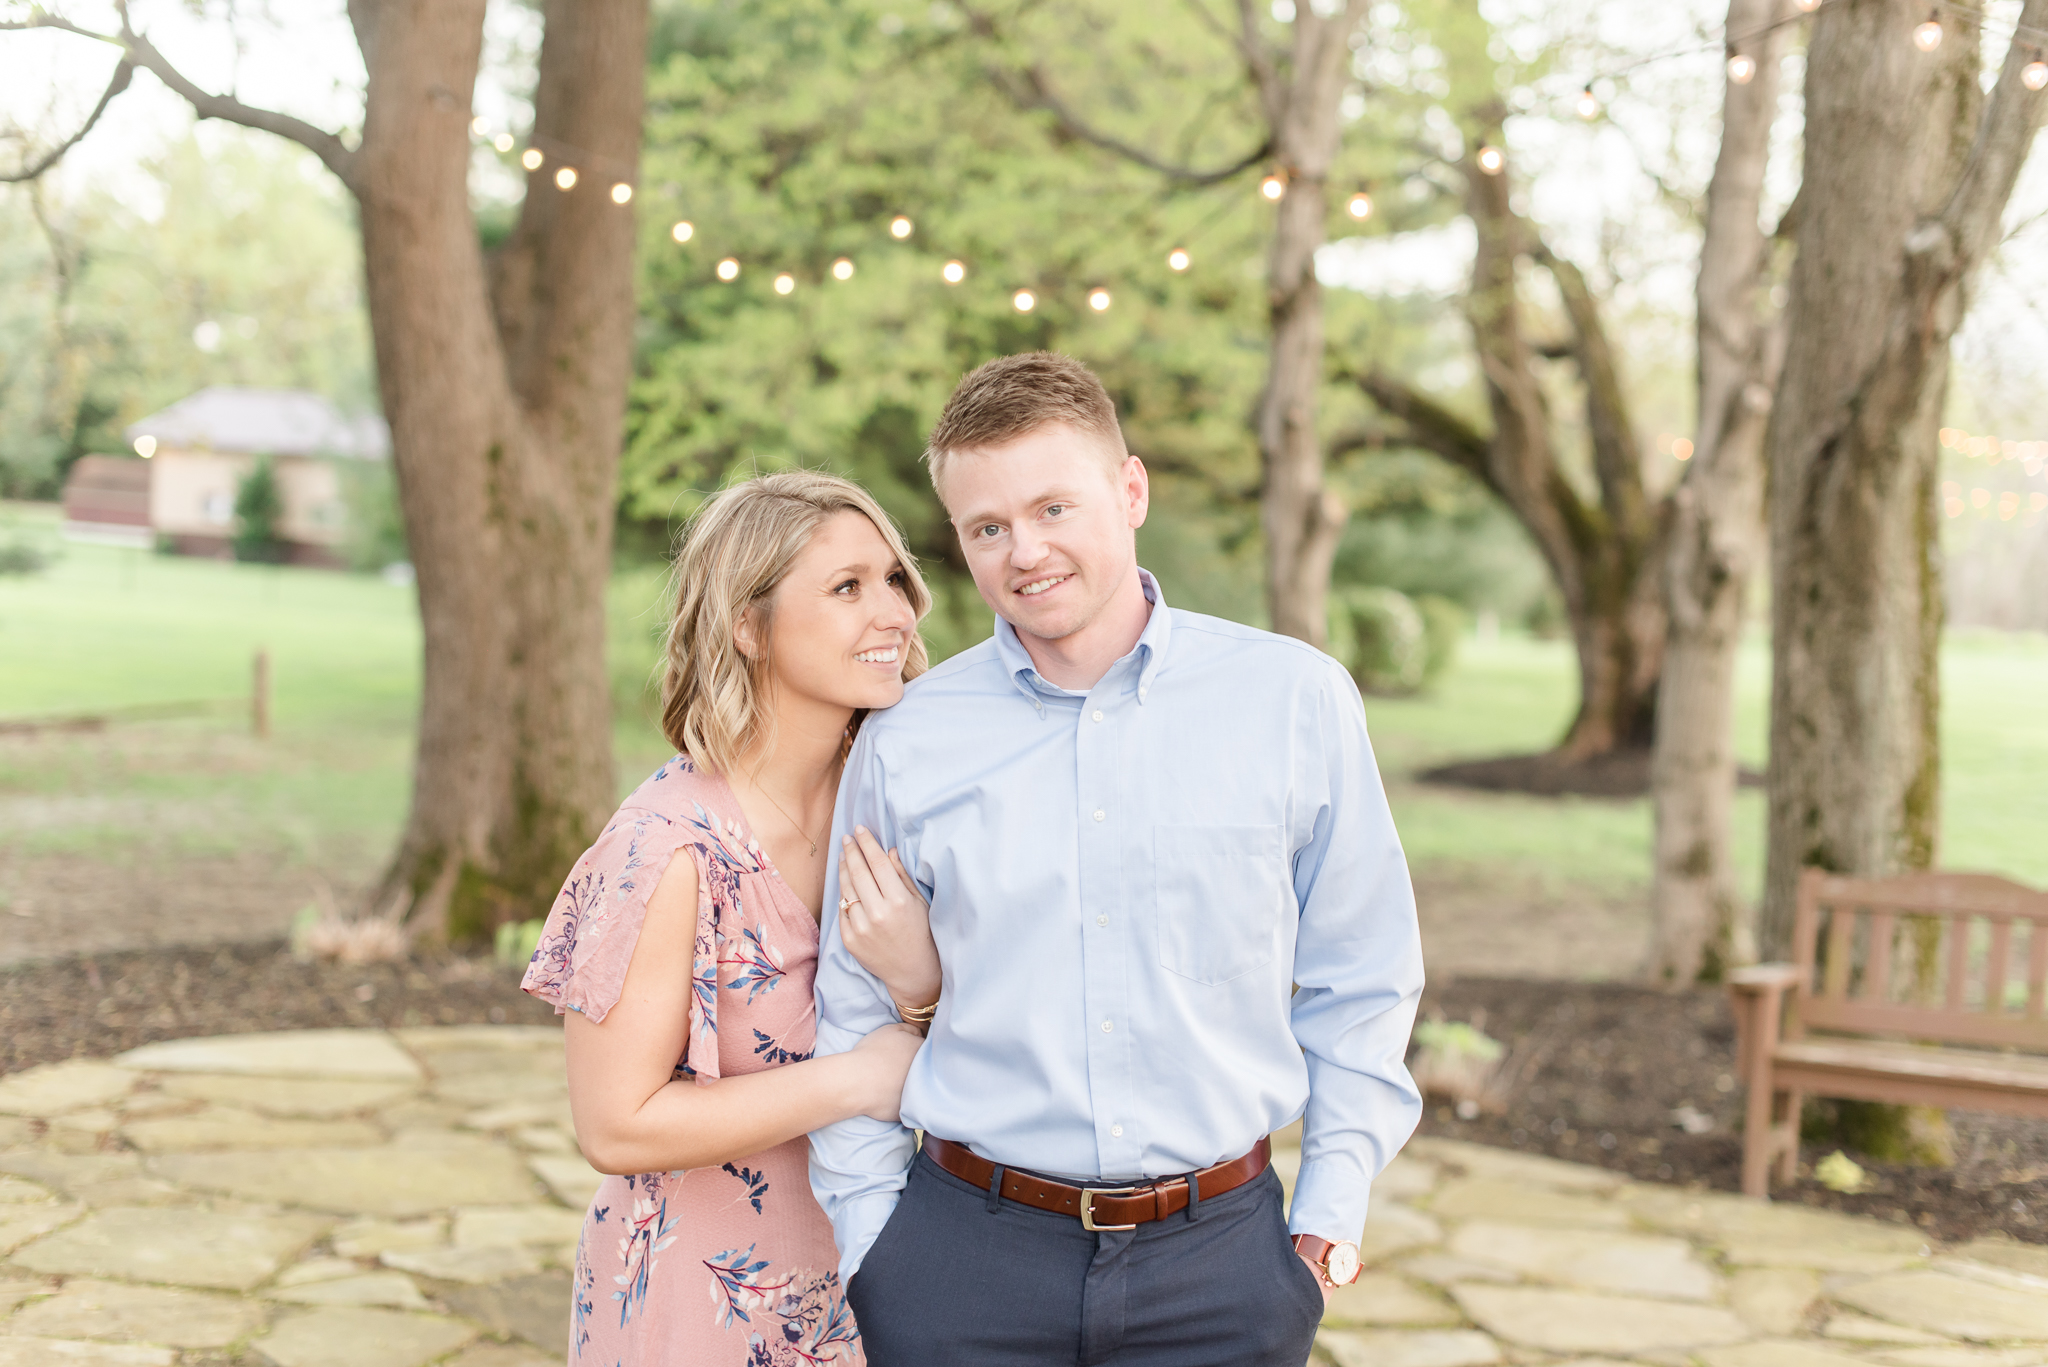 Richie Woods Nature Preserve and Mustard Seed Gardens Engagement Session Wedding Photos-46.jpg